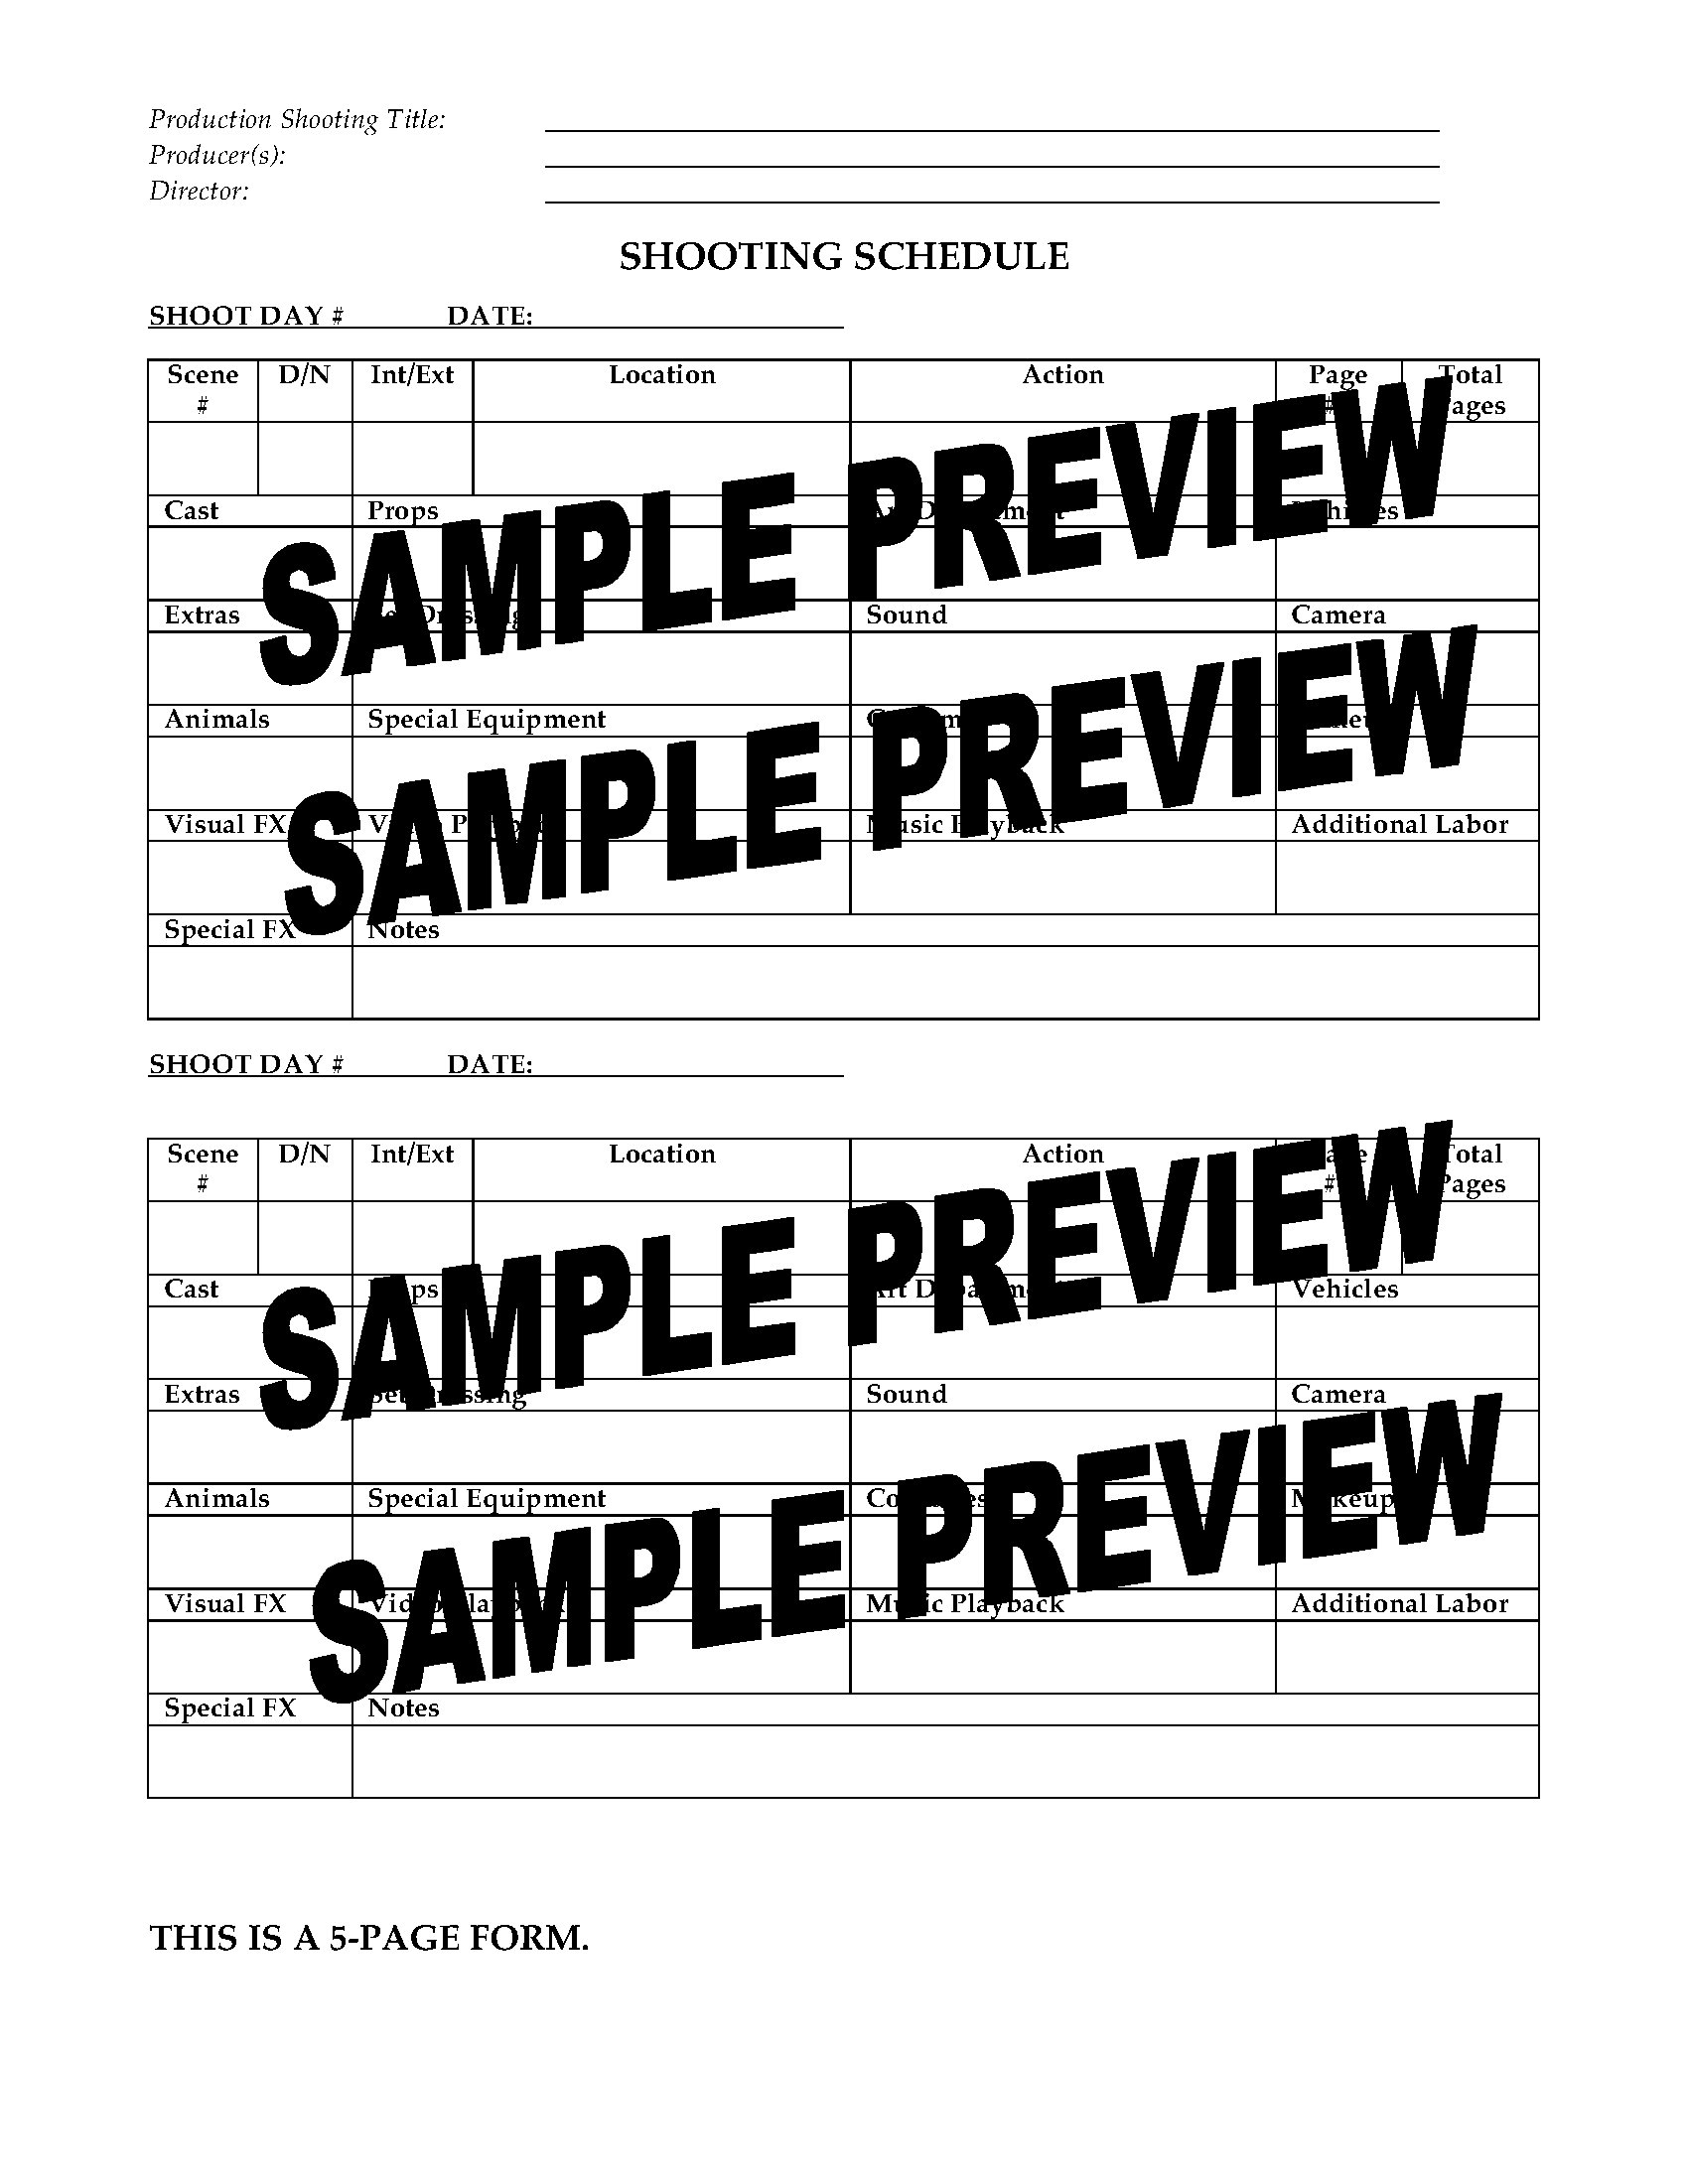 documentary production schedule template - film production shooting schedule legal forms and